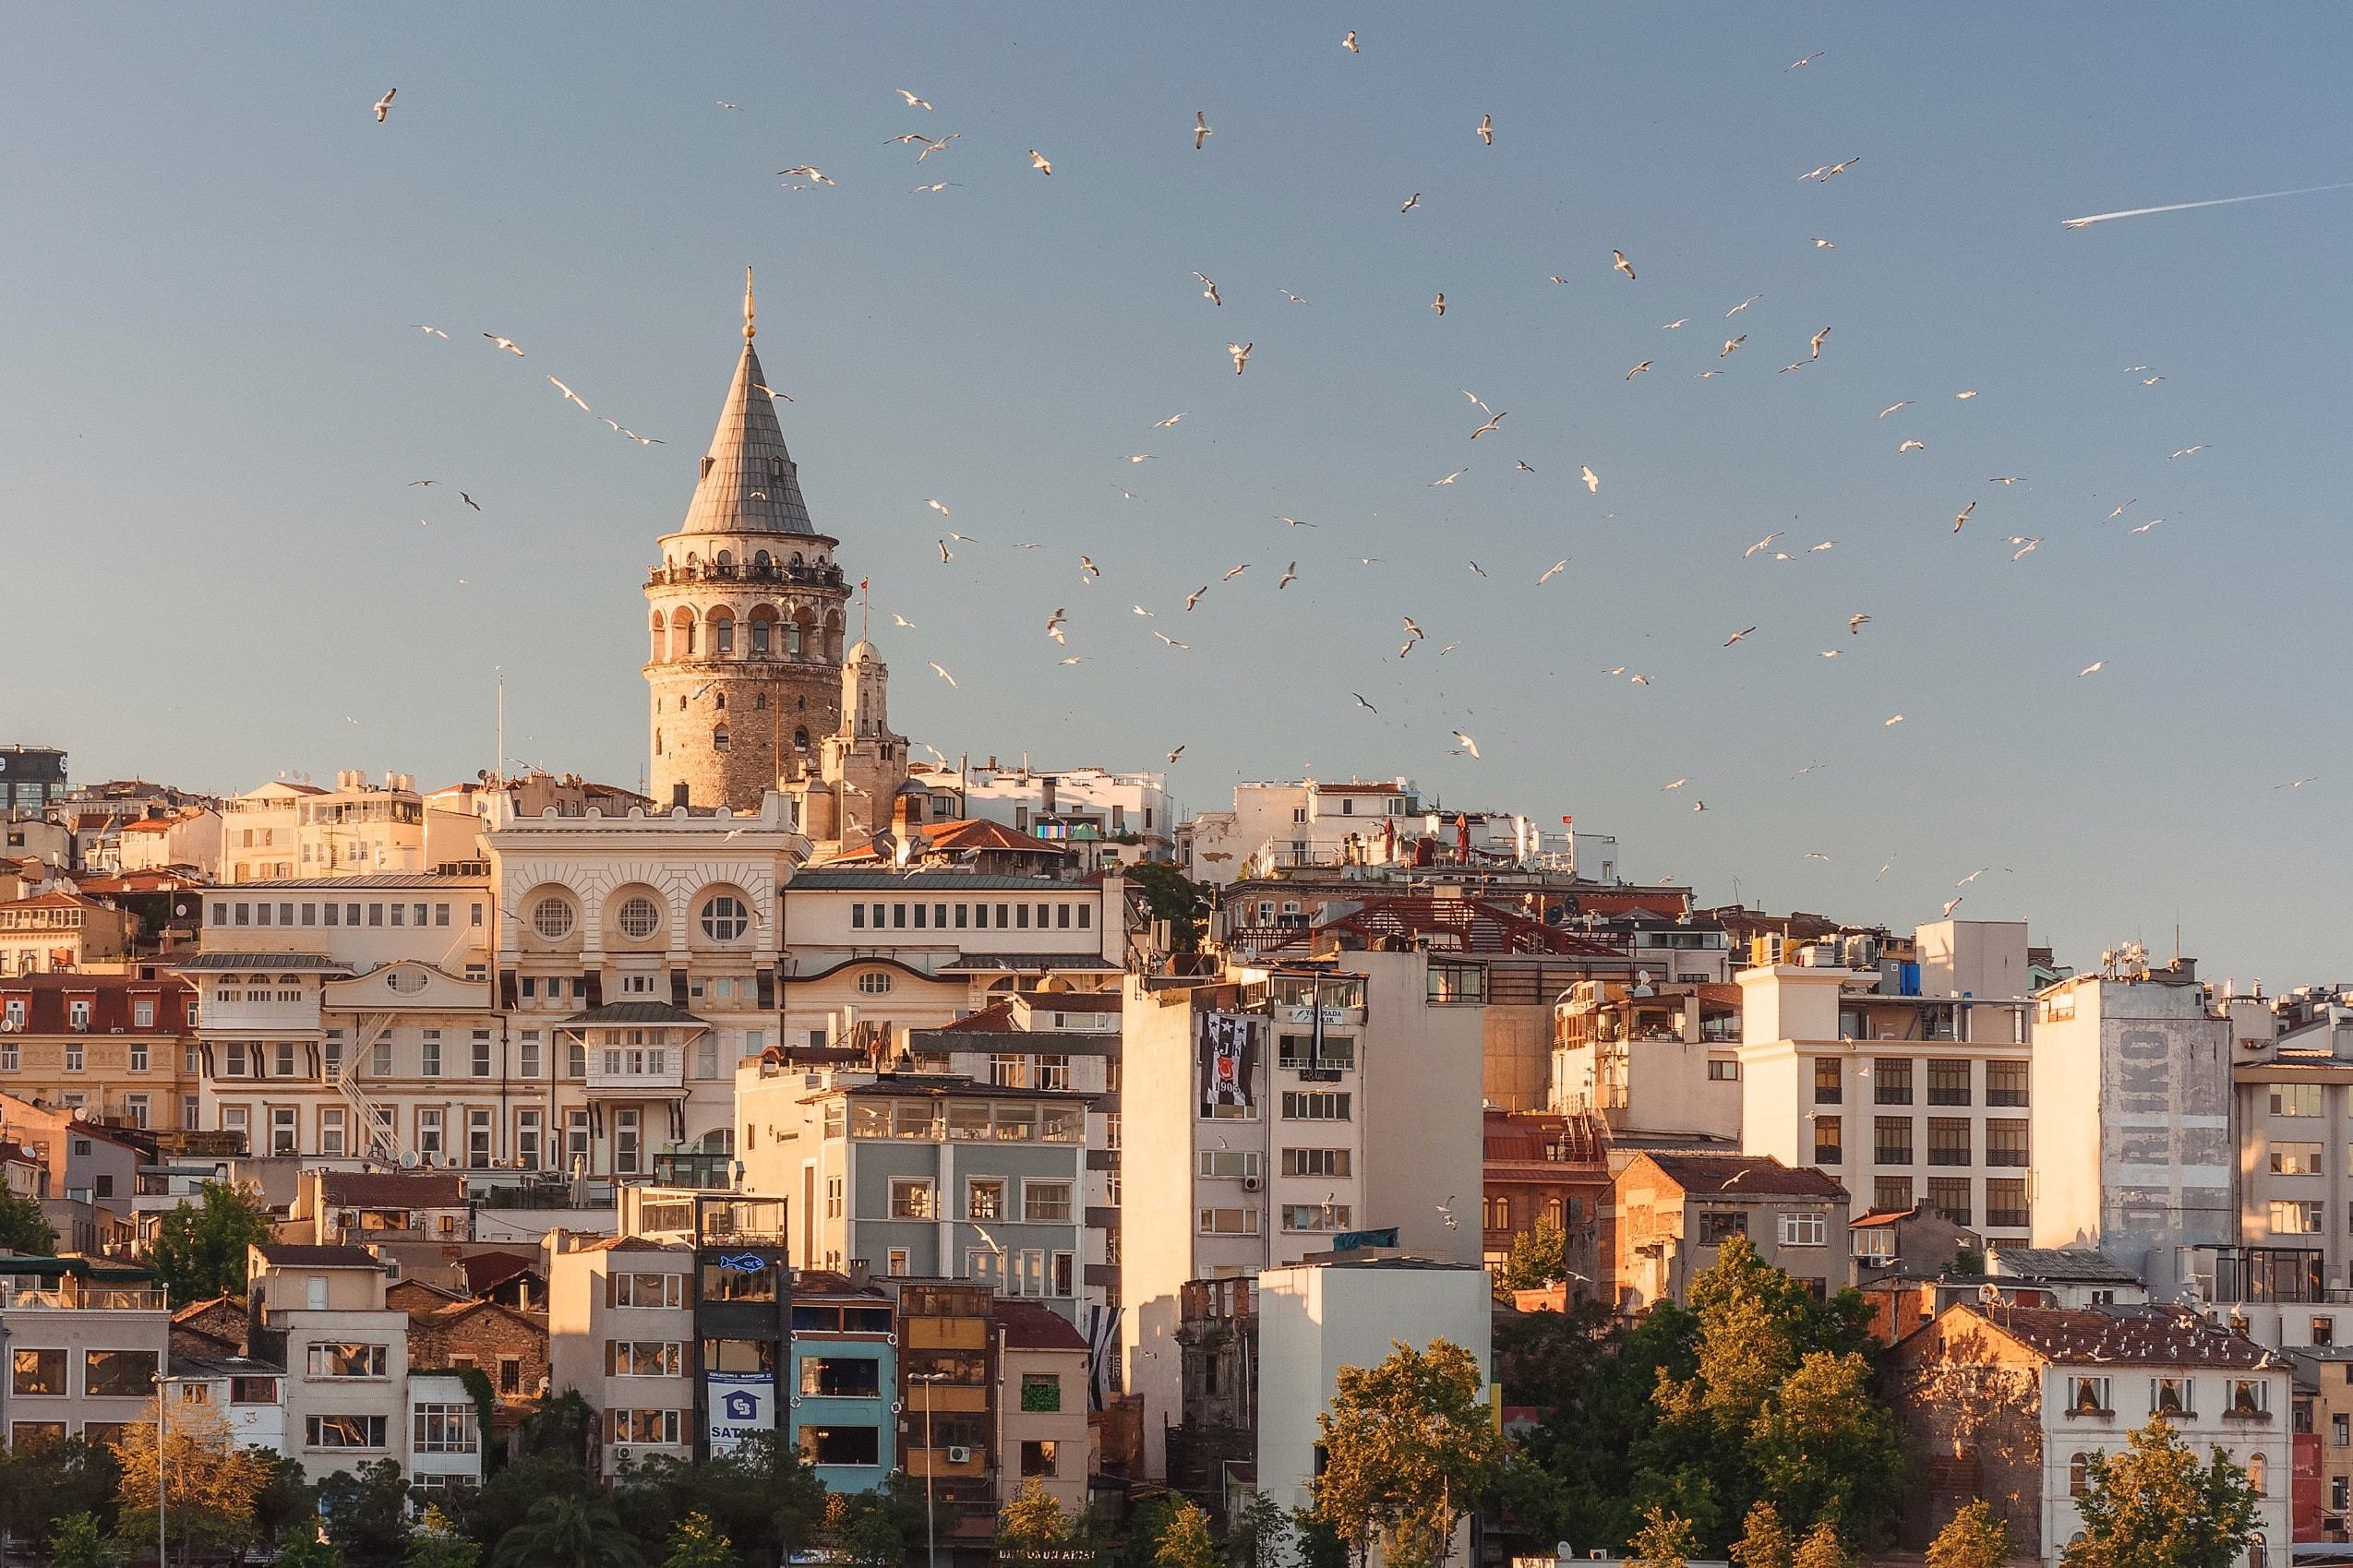 View of Galata Tower in Istanbul in the late afternoon with birds flying overhead.